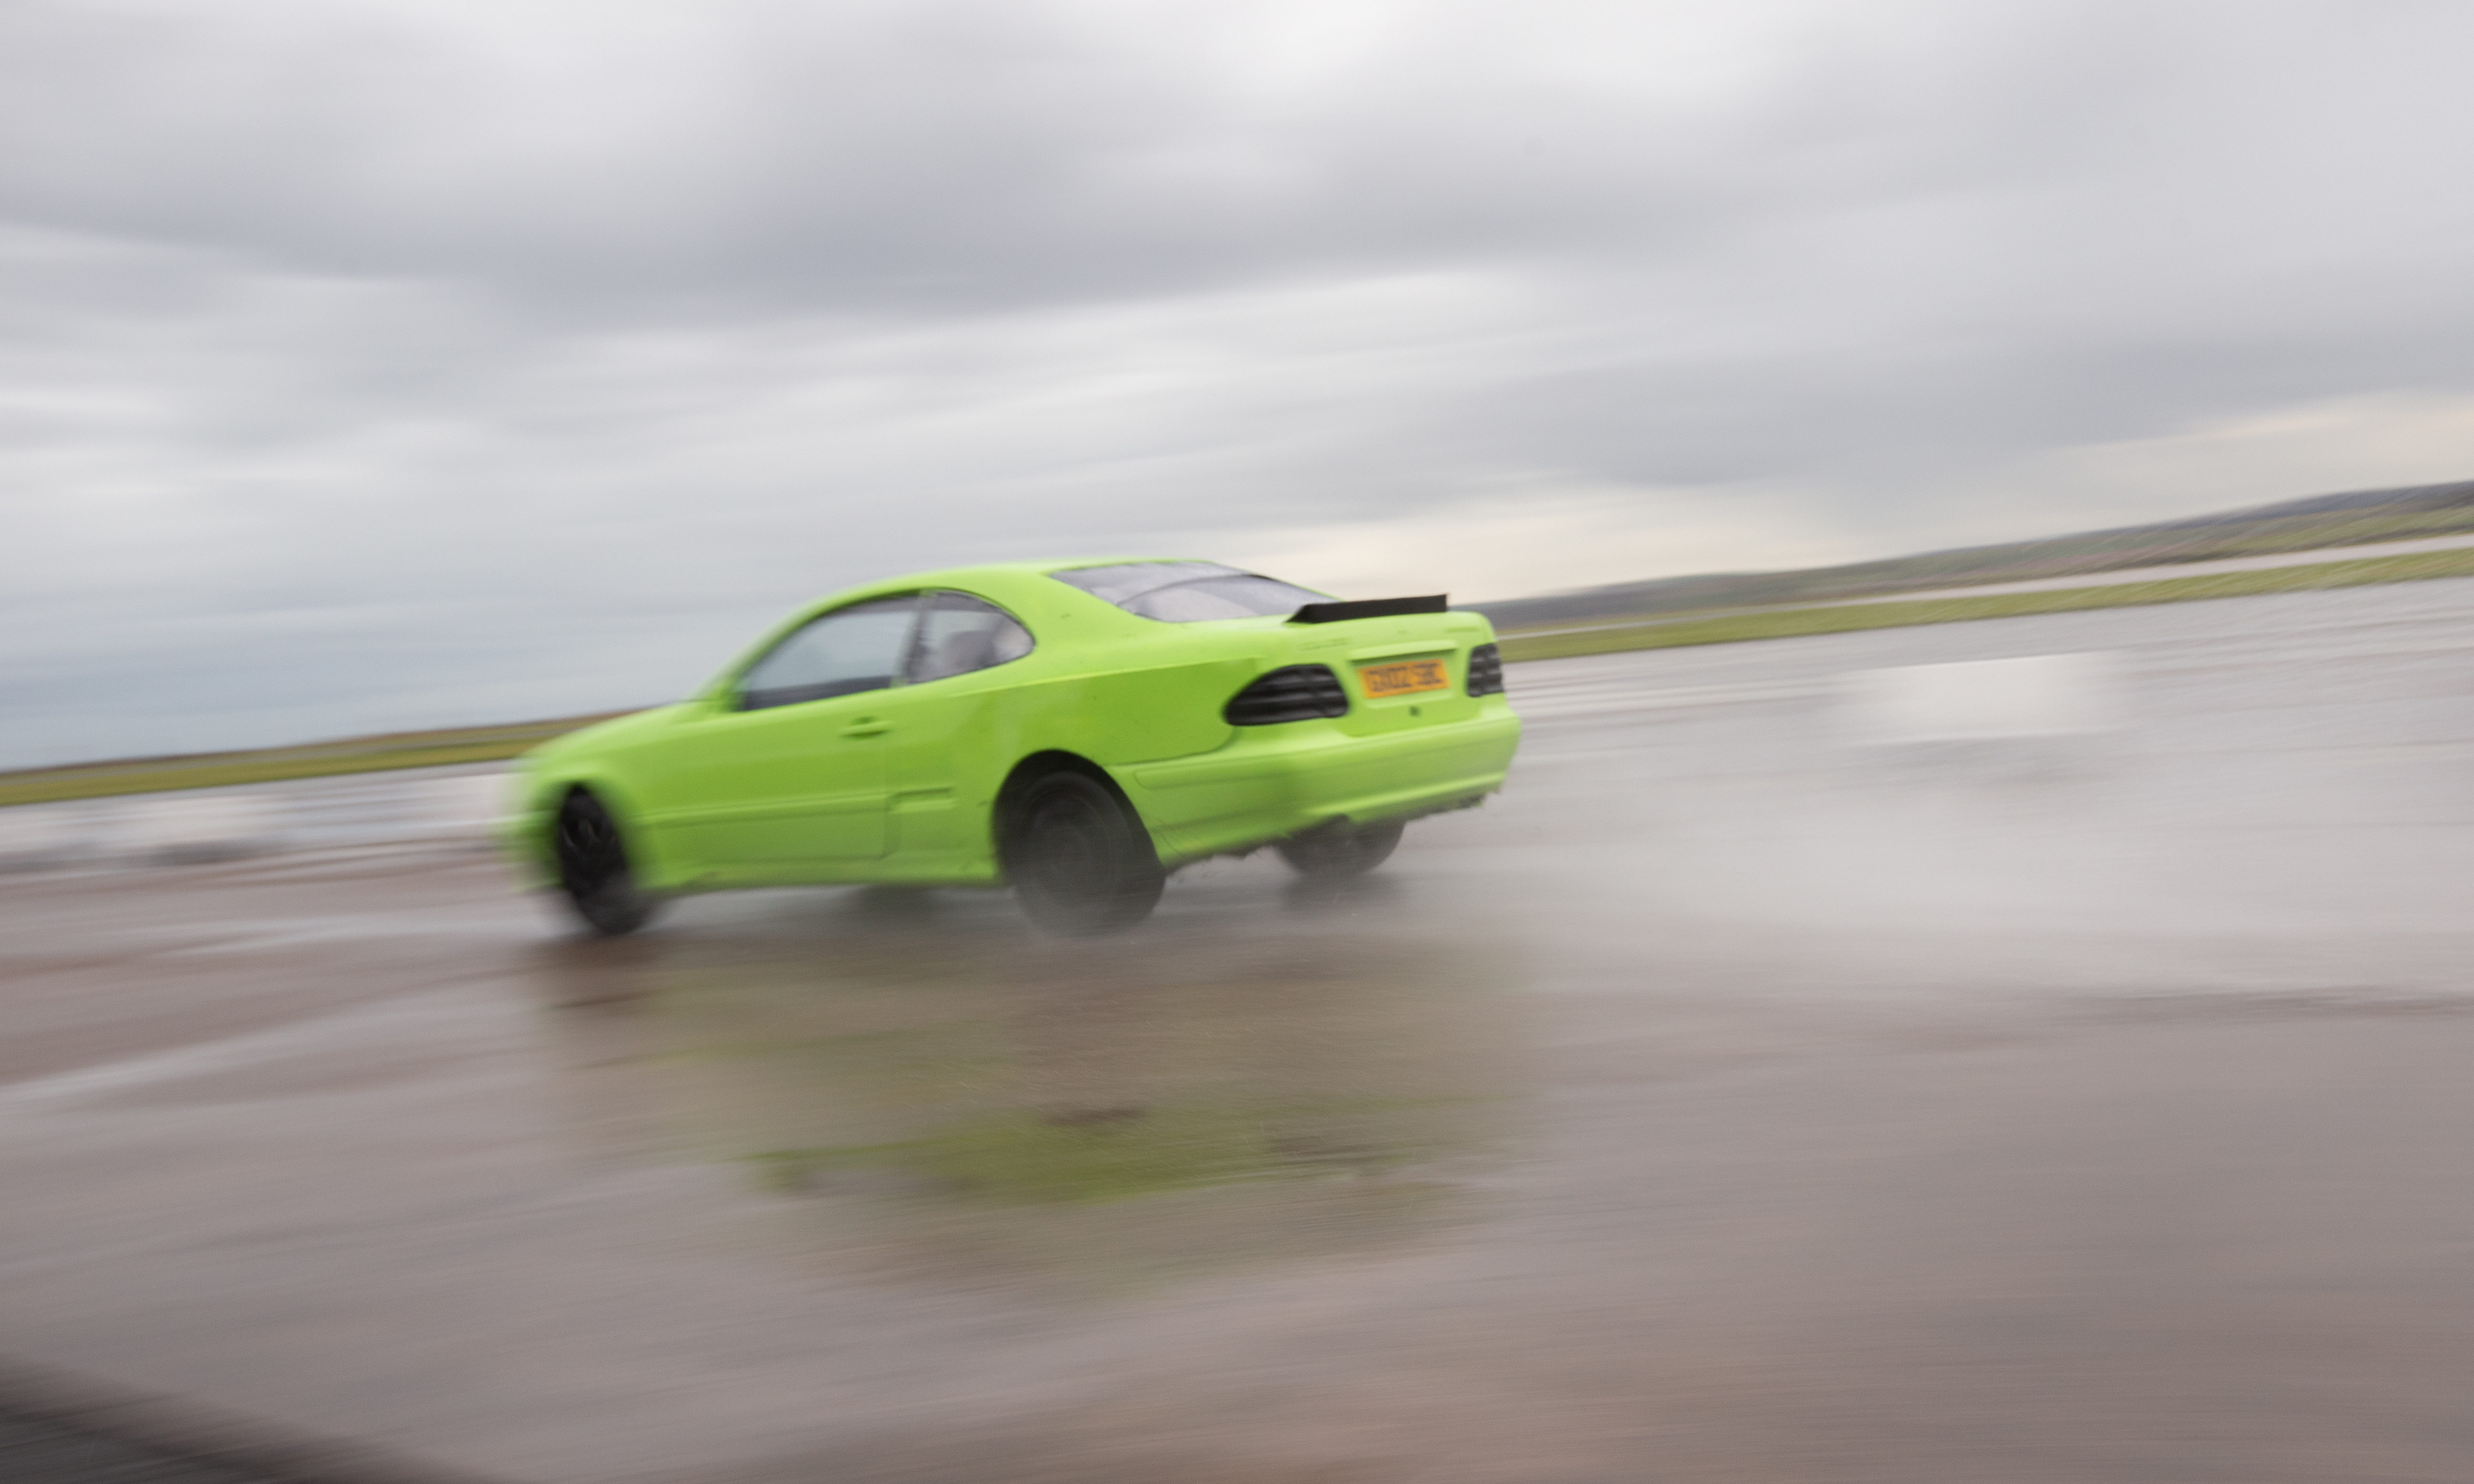 Action from the REME drag race